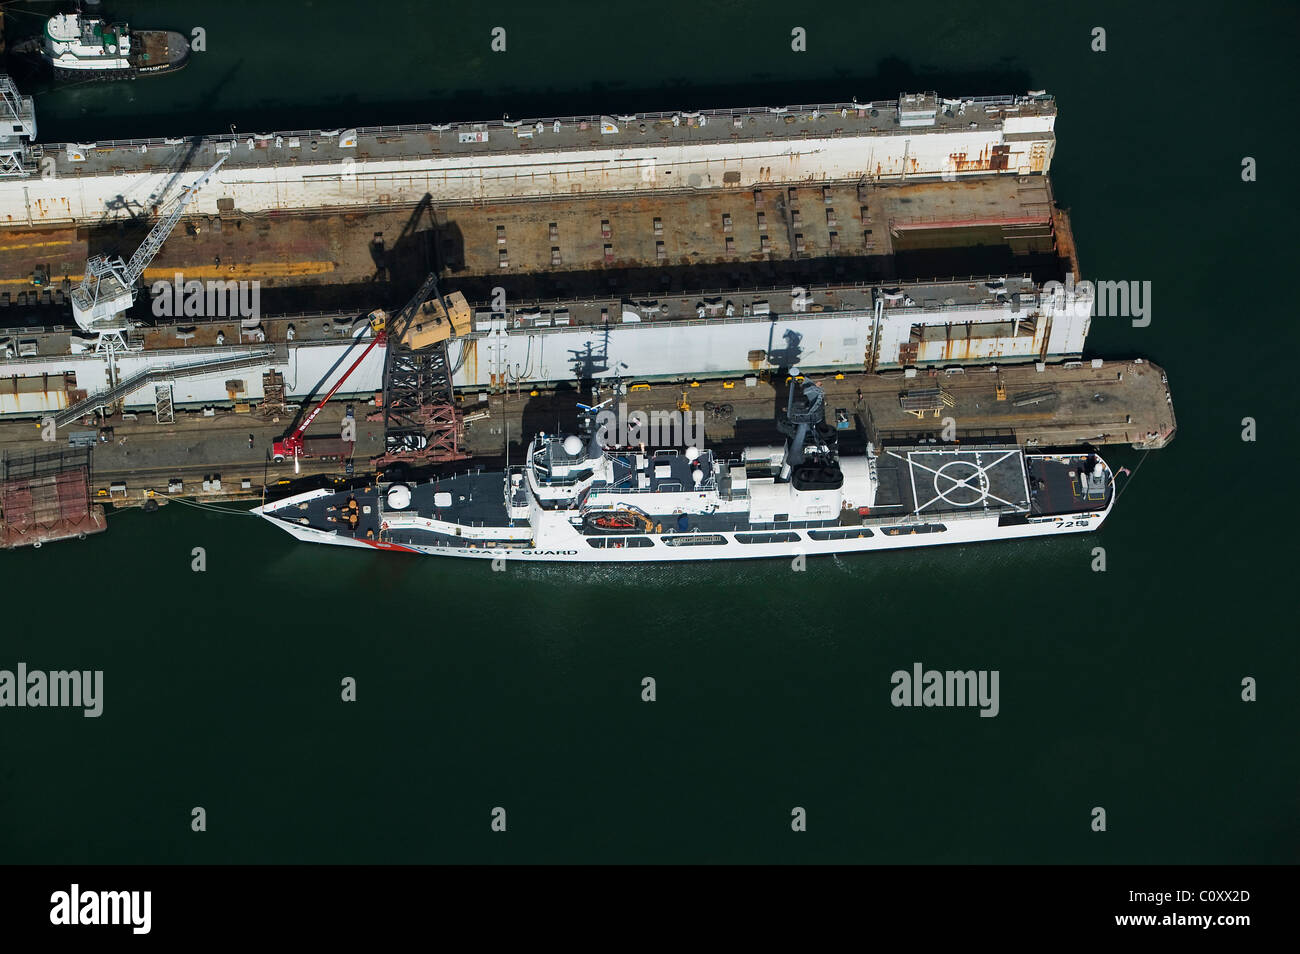 aerial view above United States Coast Guard cutter berthed San Francisco Dry Dock California - Stock Image